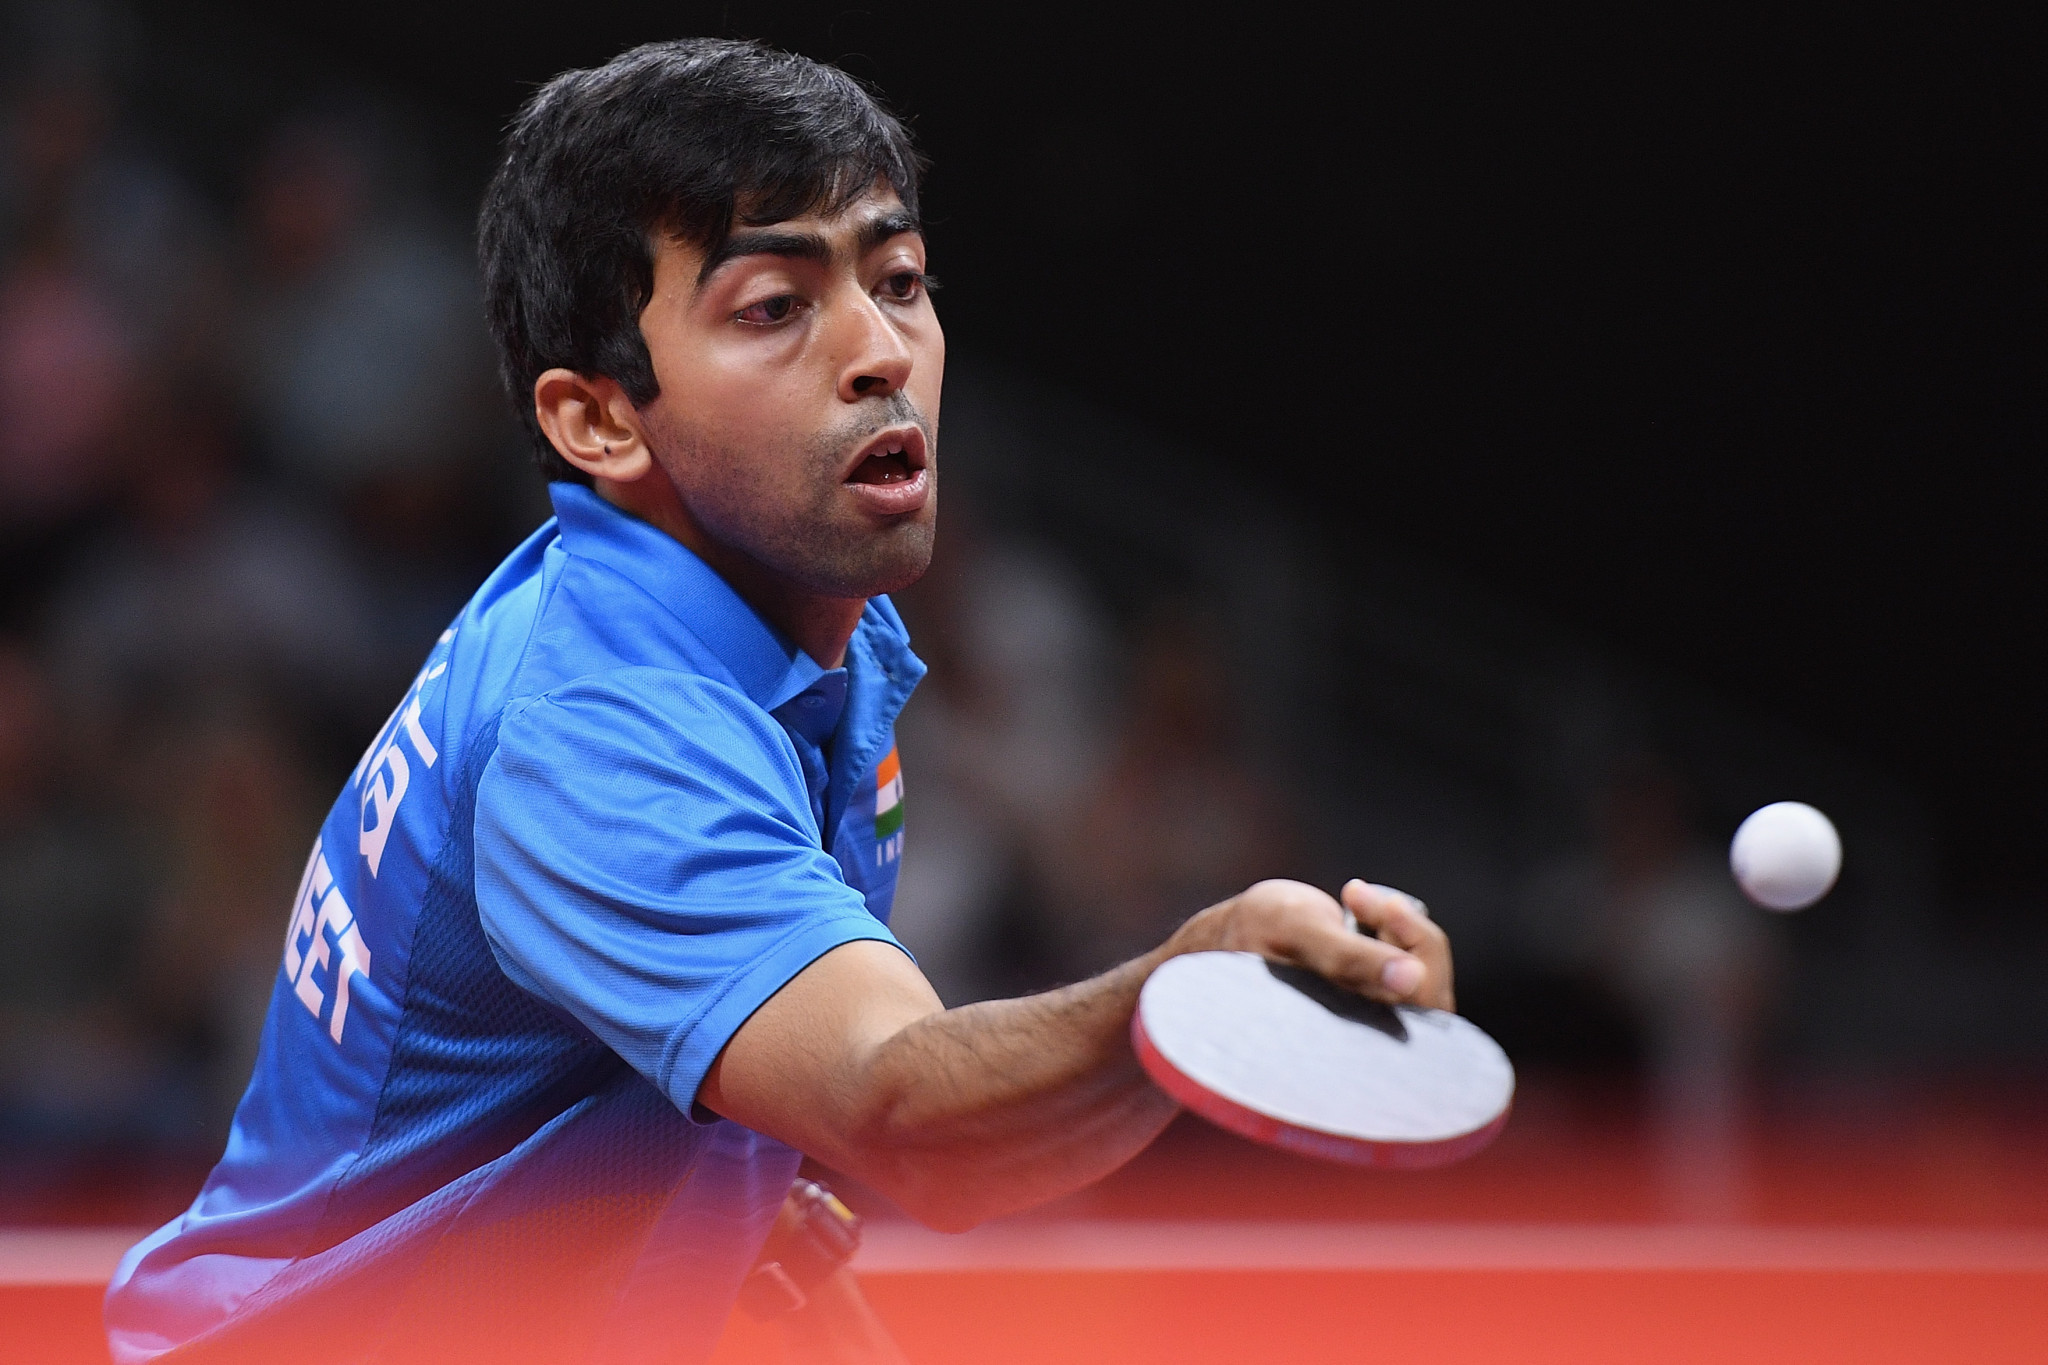 Harmeet Desai got the better of the world number 24 and compatriot Sathiyan Gnanasekaran to claim gold as India dominated the final day at the Commonwealth Table Table Championships ©Getty Images